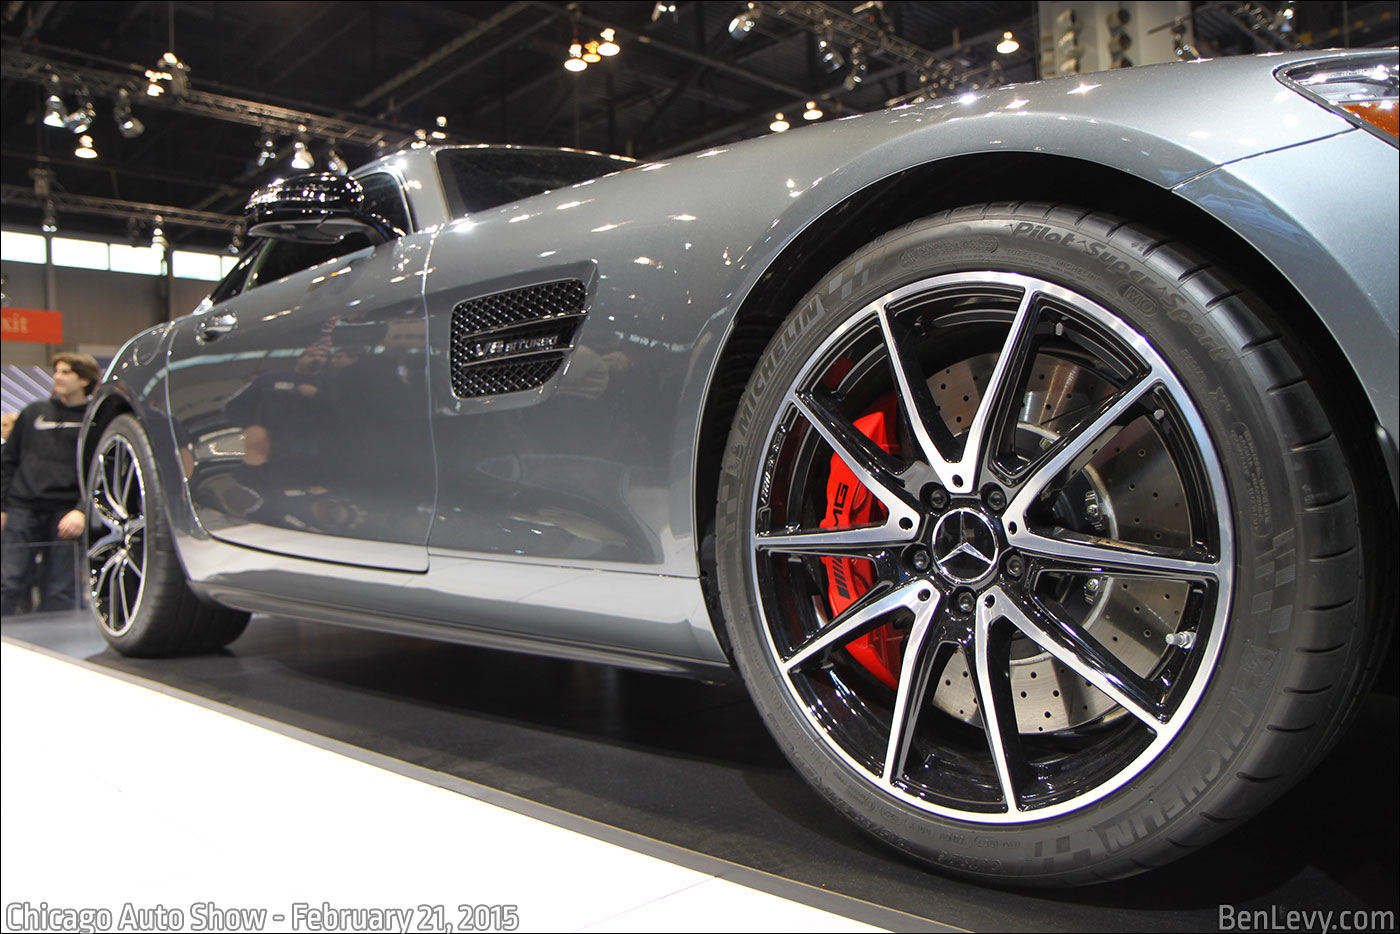 Fender vent and Wheel of Mercedes-AMG GT S